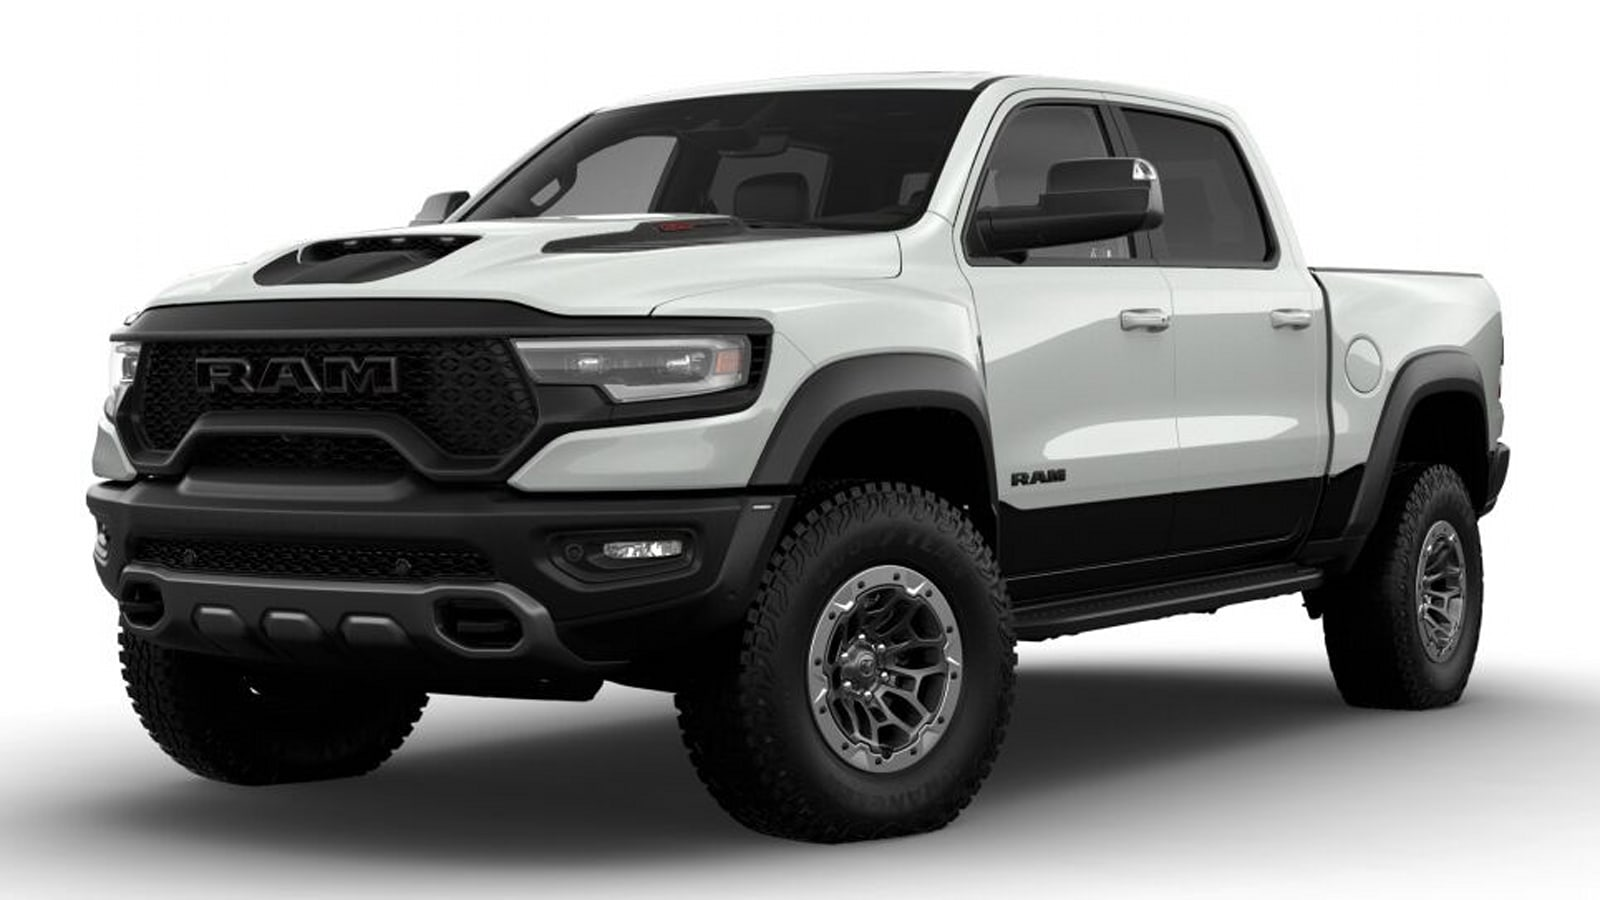 2021 Ram 1500 TRX configurator is up | Here's how we'd build ours